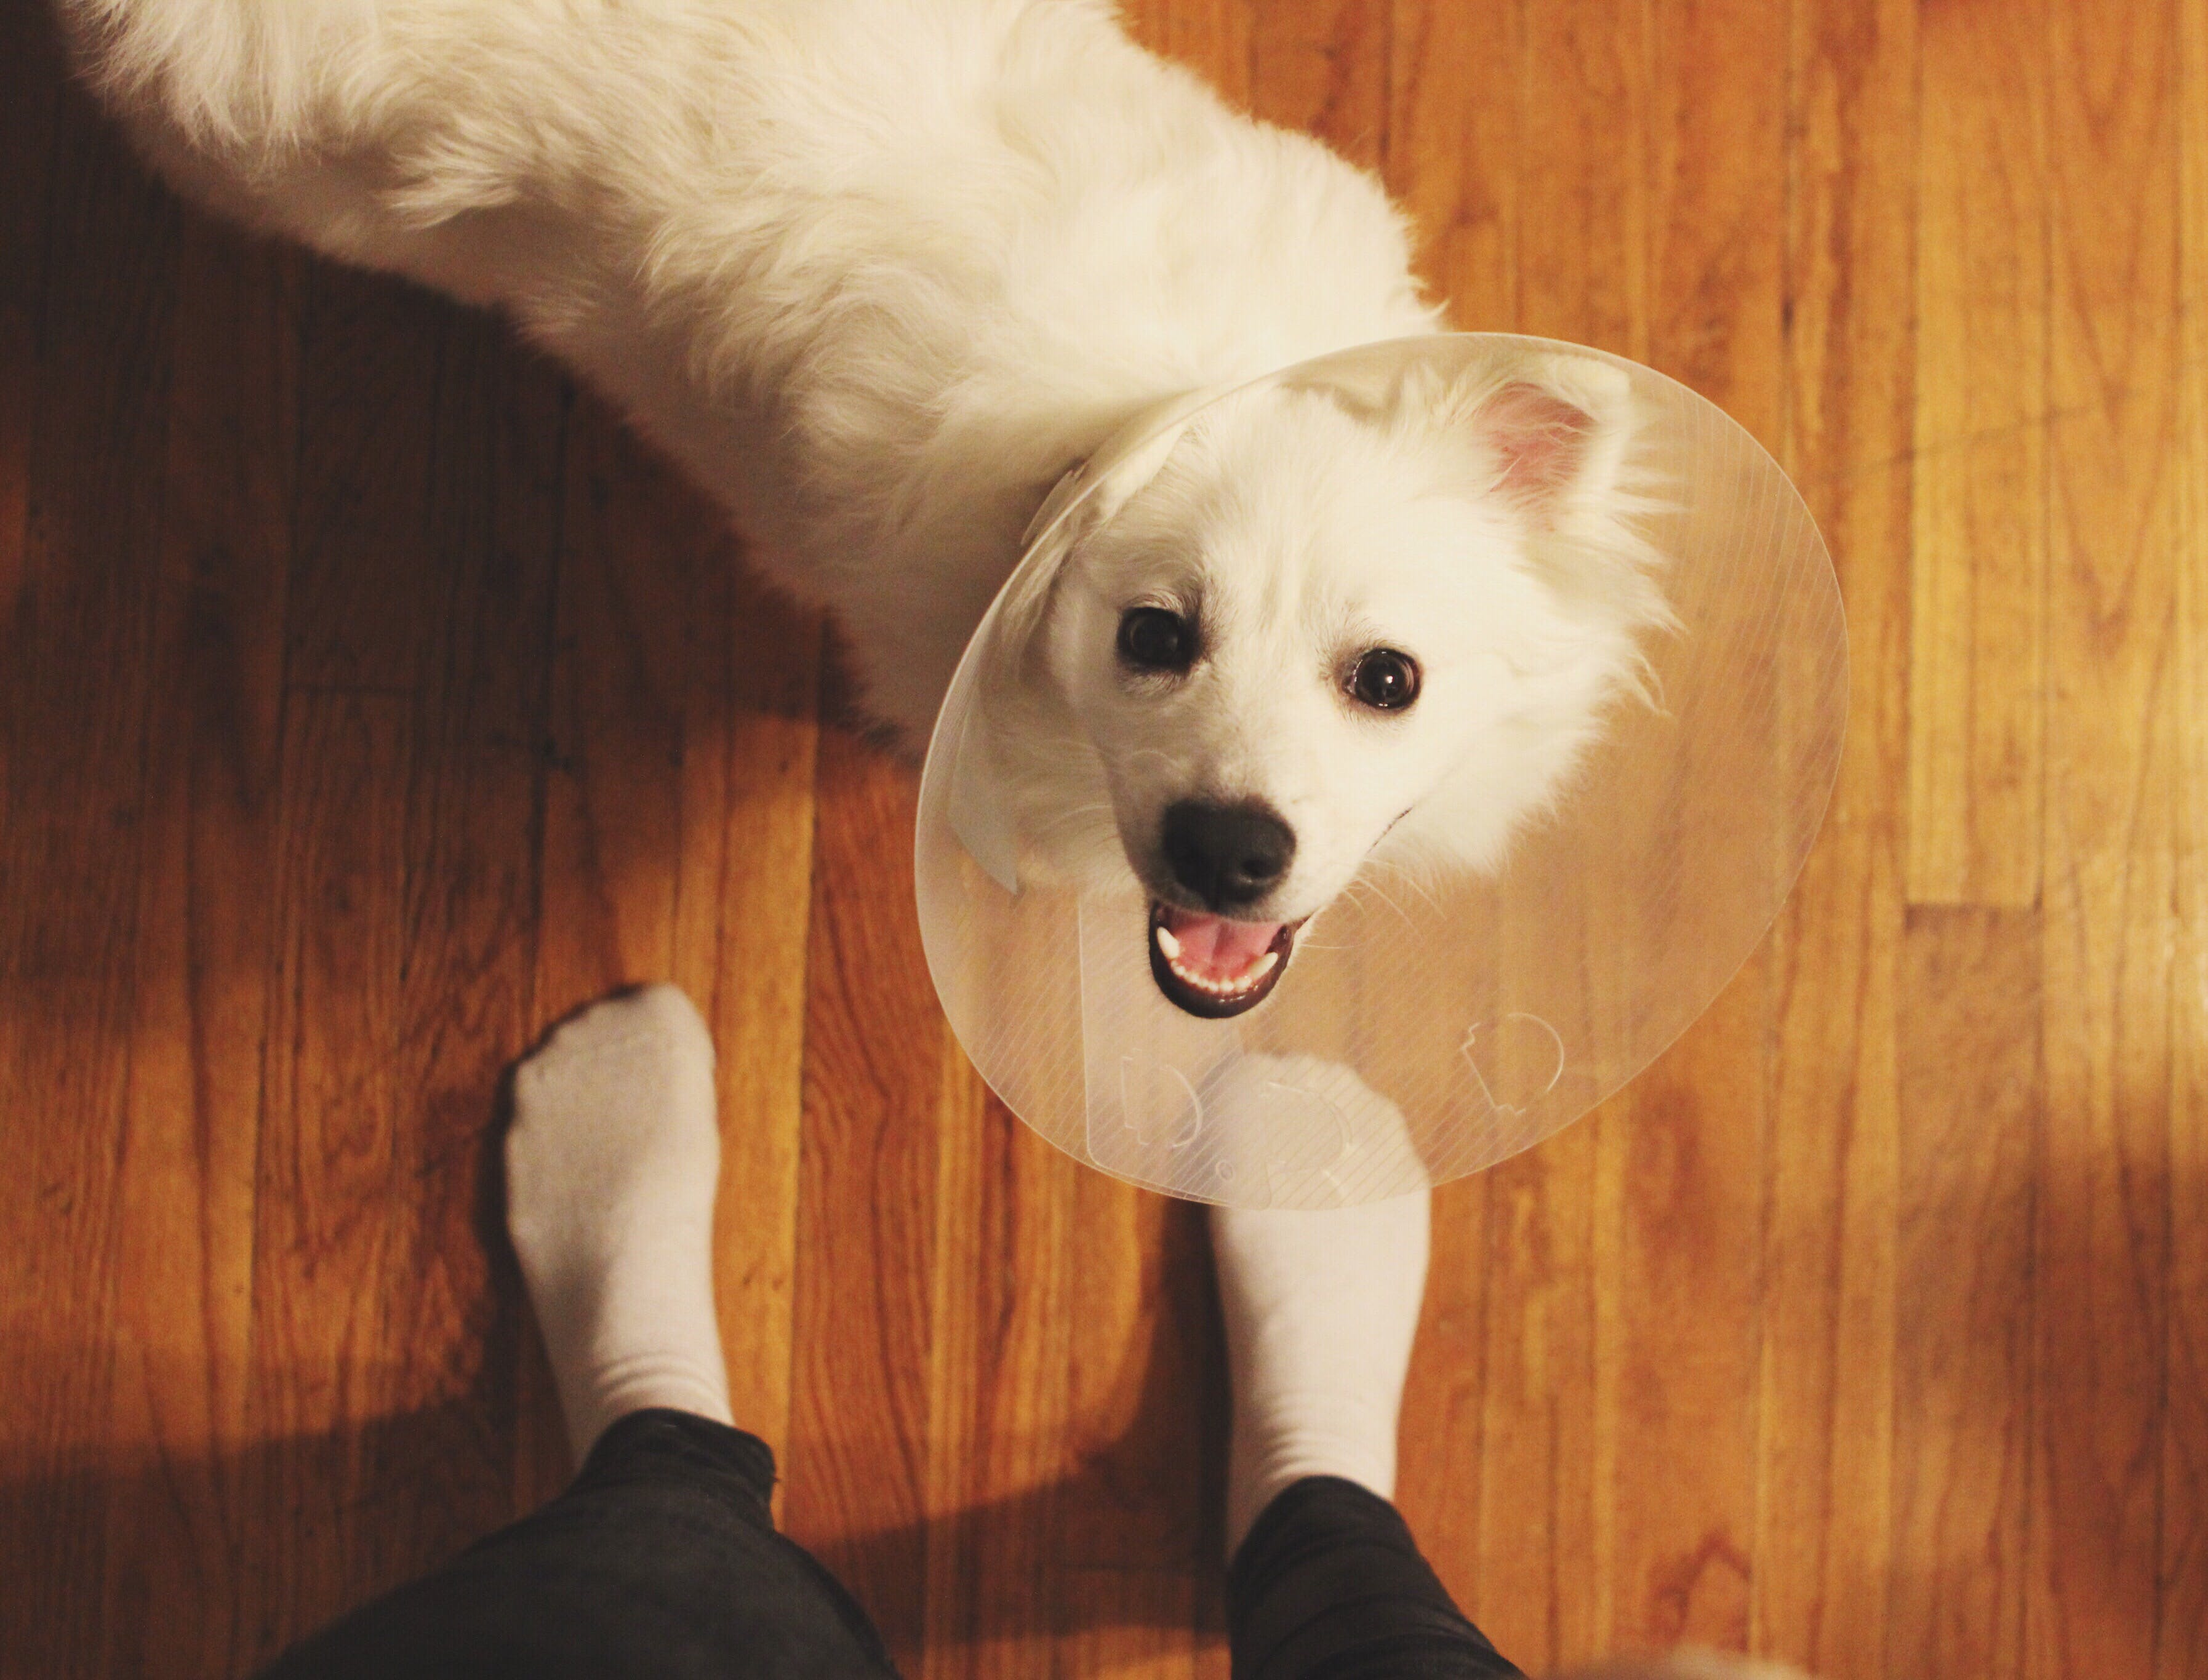 white dog wearing a cone looks up at his owner